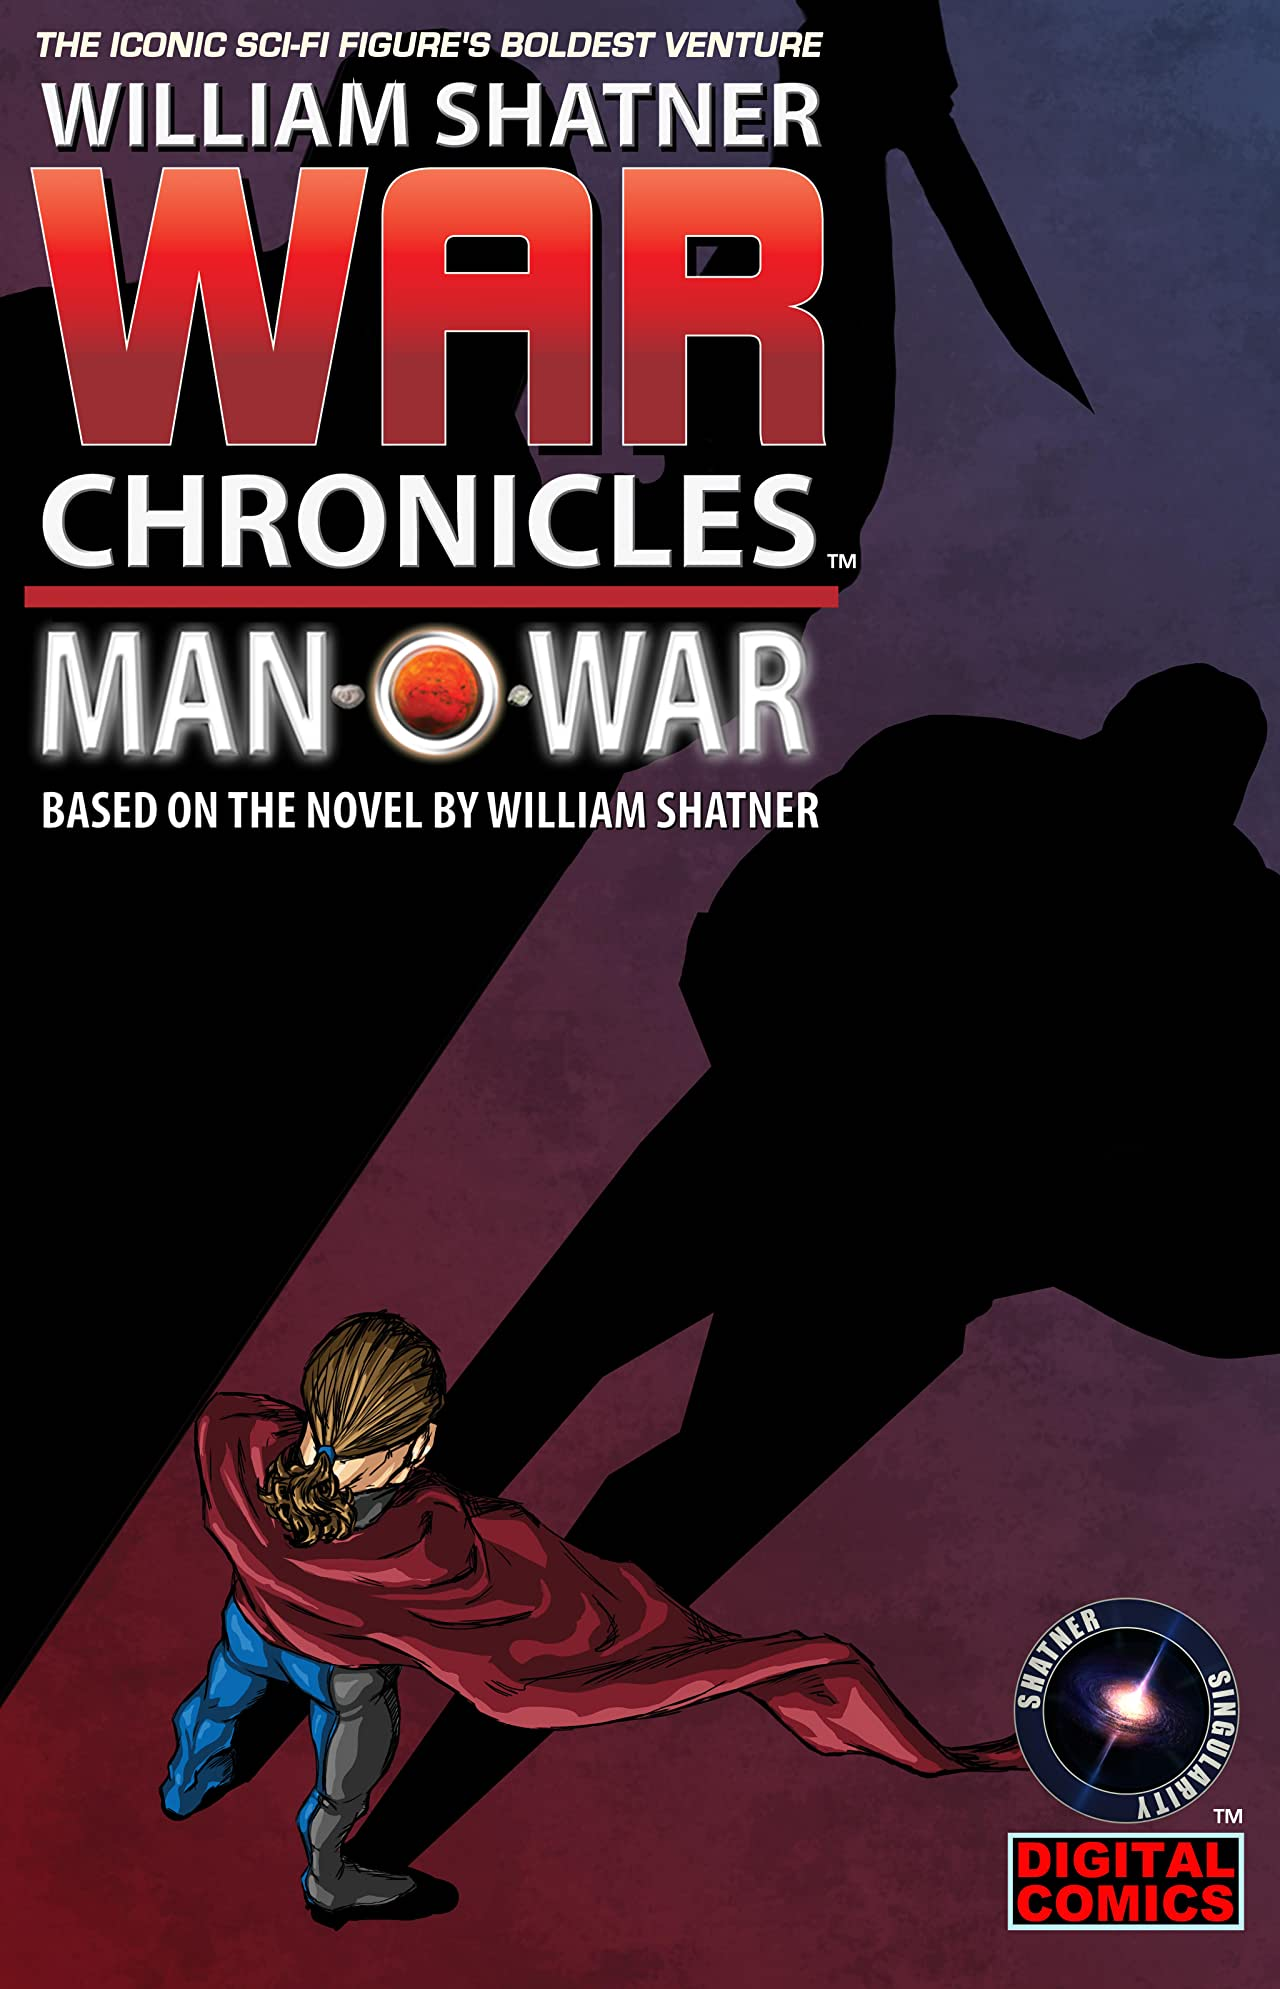 William Shatner's War Chronicles: Man O' War #8